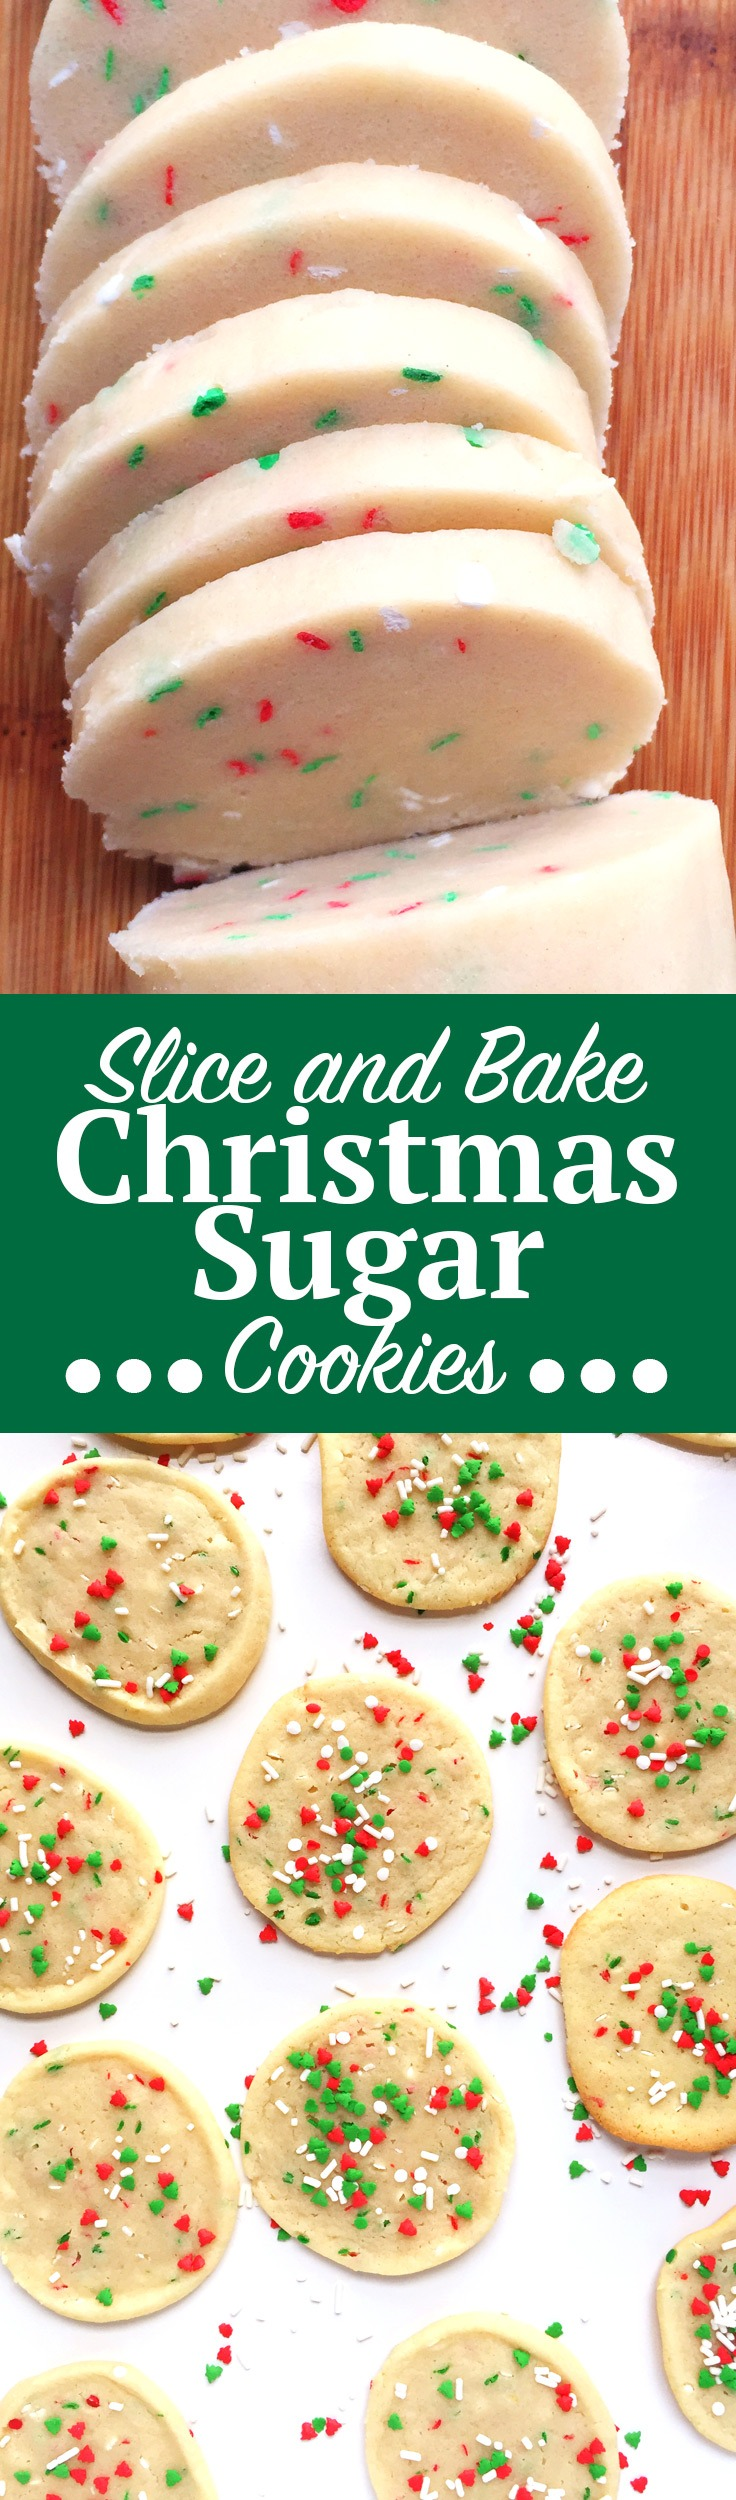 Slice and Bake Christmas Sugar Cookies. This no-roll, easy Christmas Sugar Cookie recipe is simply slice and bake, no messy flour surfaces needed! Add this to your holiday sugar cookie recipe collection ASAP and click through for the full recipe! | SeasonlyCreations.com | @SeasonlyBlog